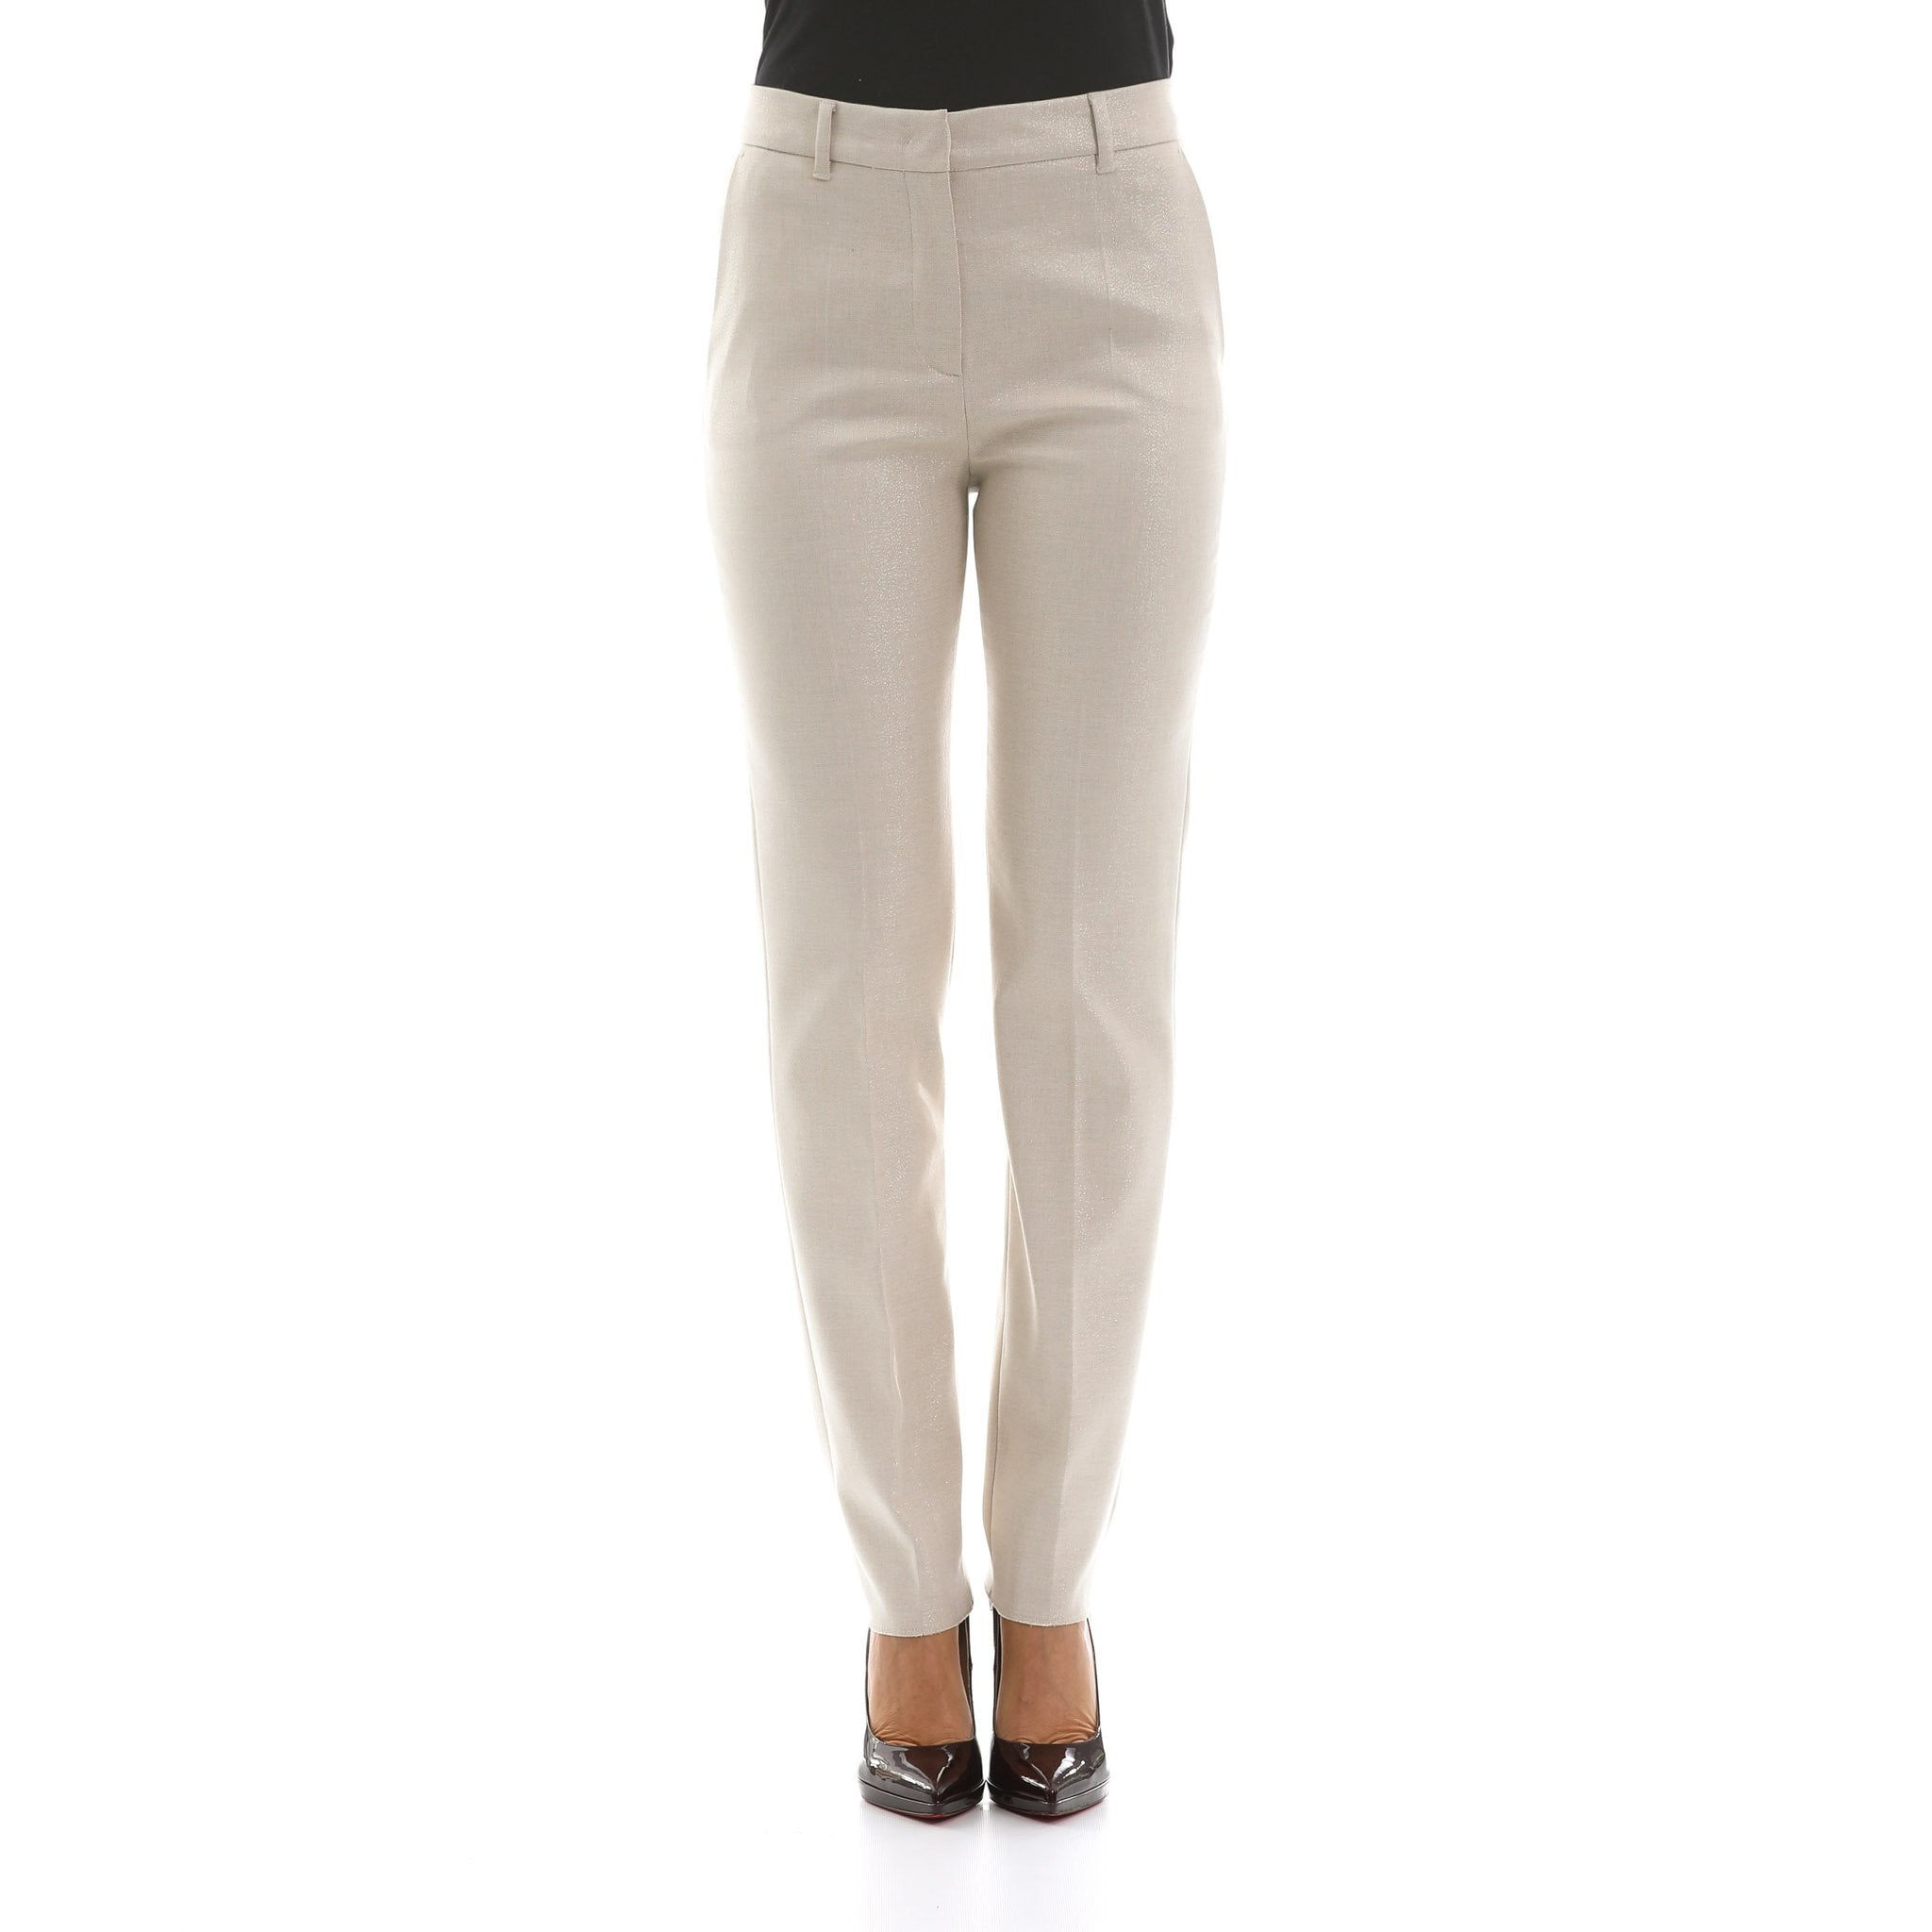 Max Mara Studio Glitter Cotton Blend Trousers